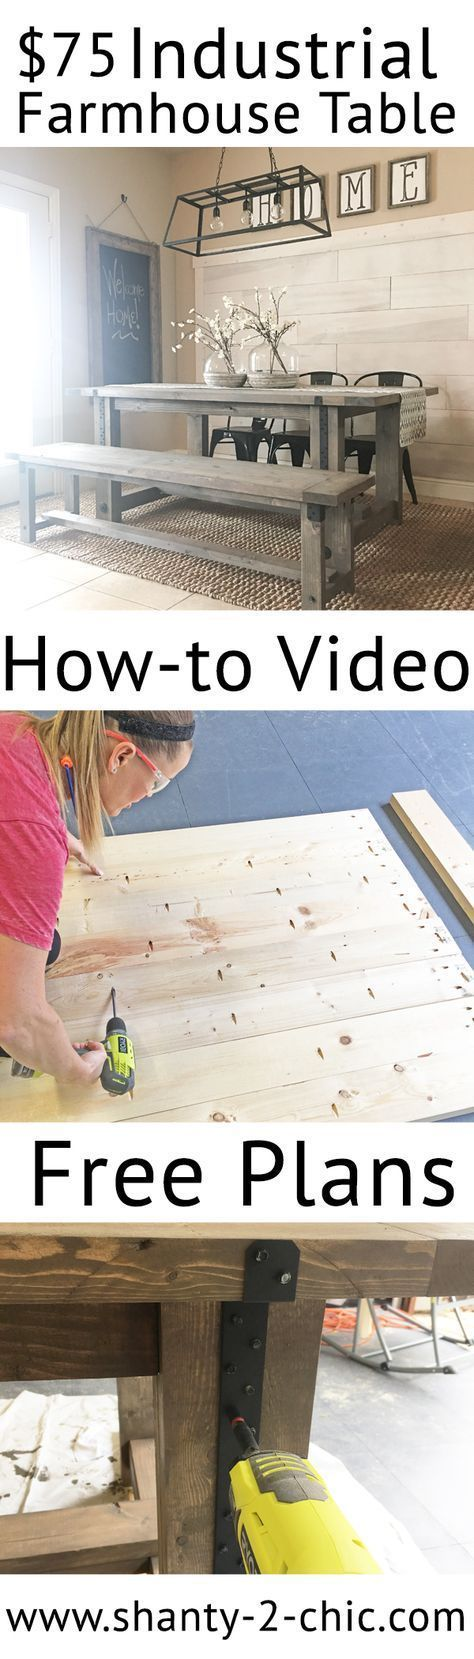 Build this Industrial Farmhouse Table with only framing materials! How-to video and free plans at www.shanty-2-chic...